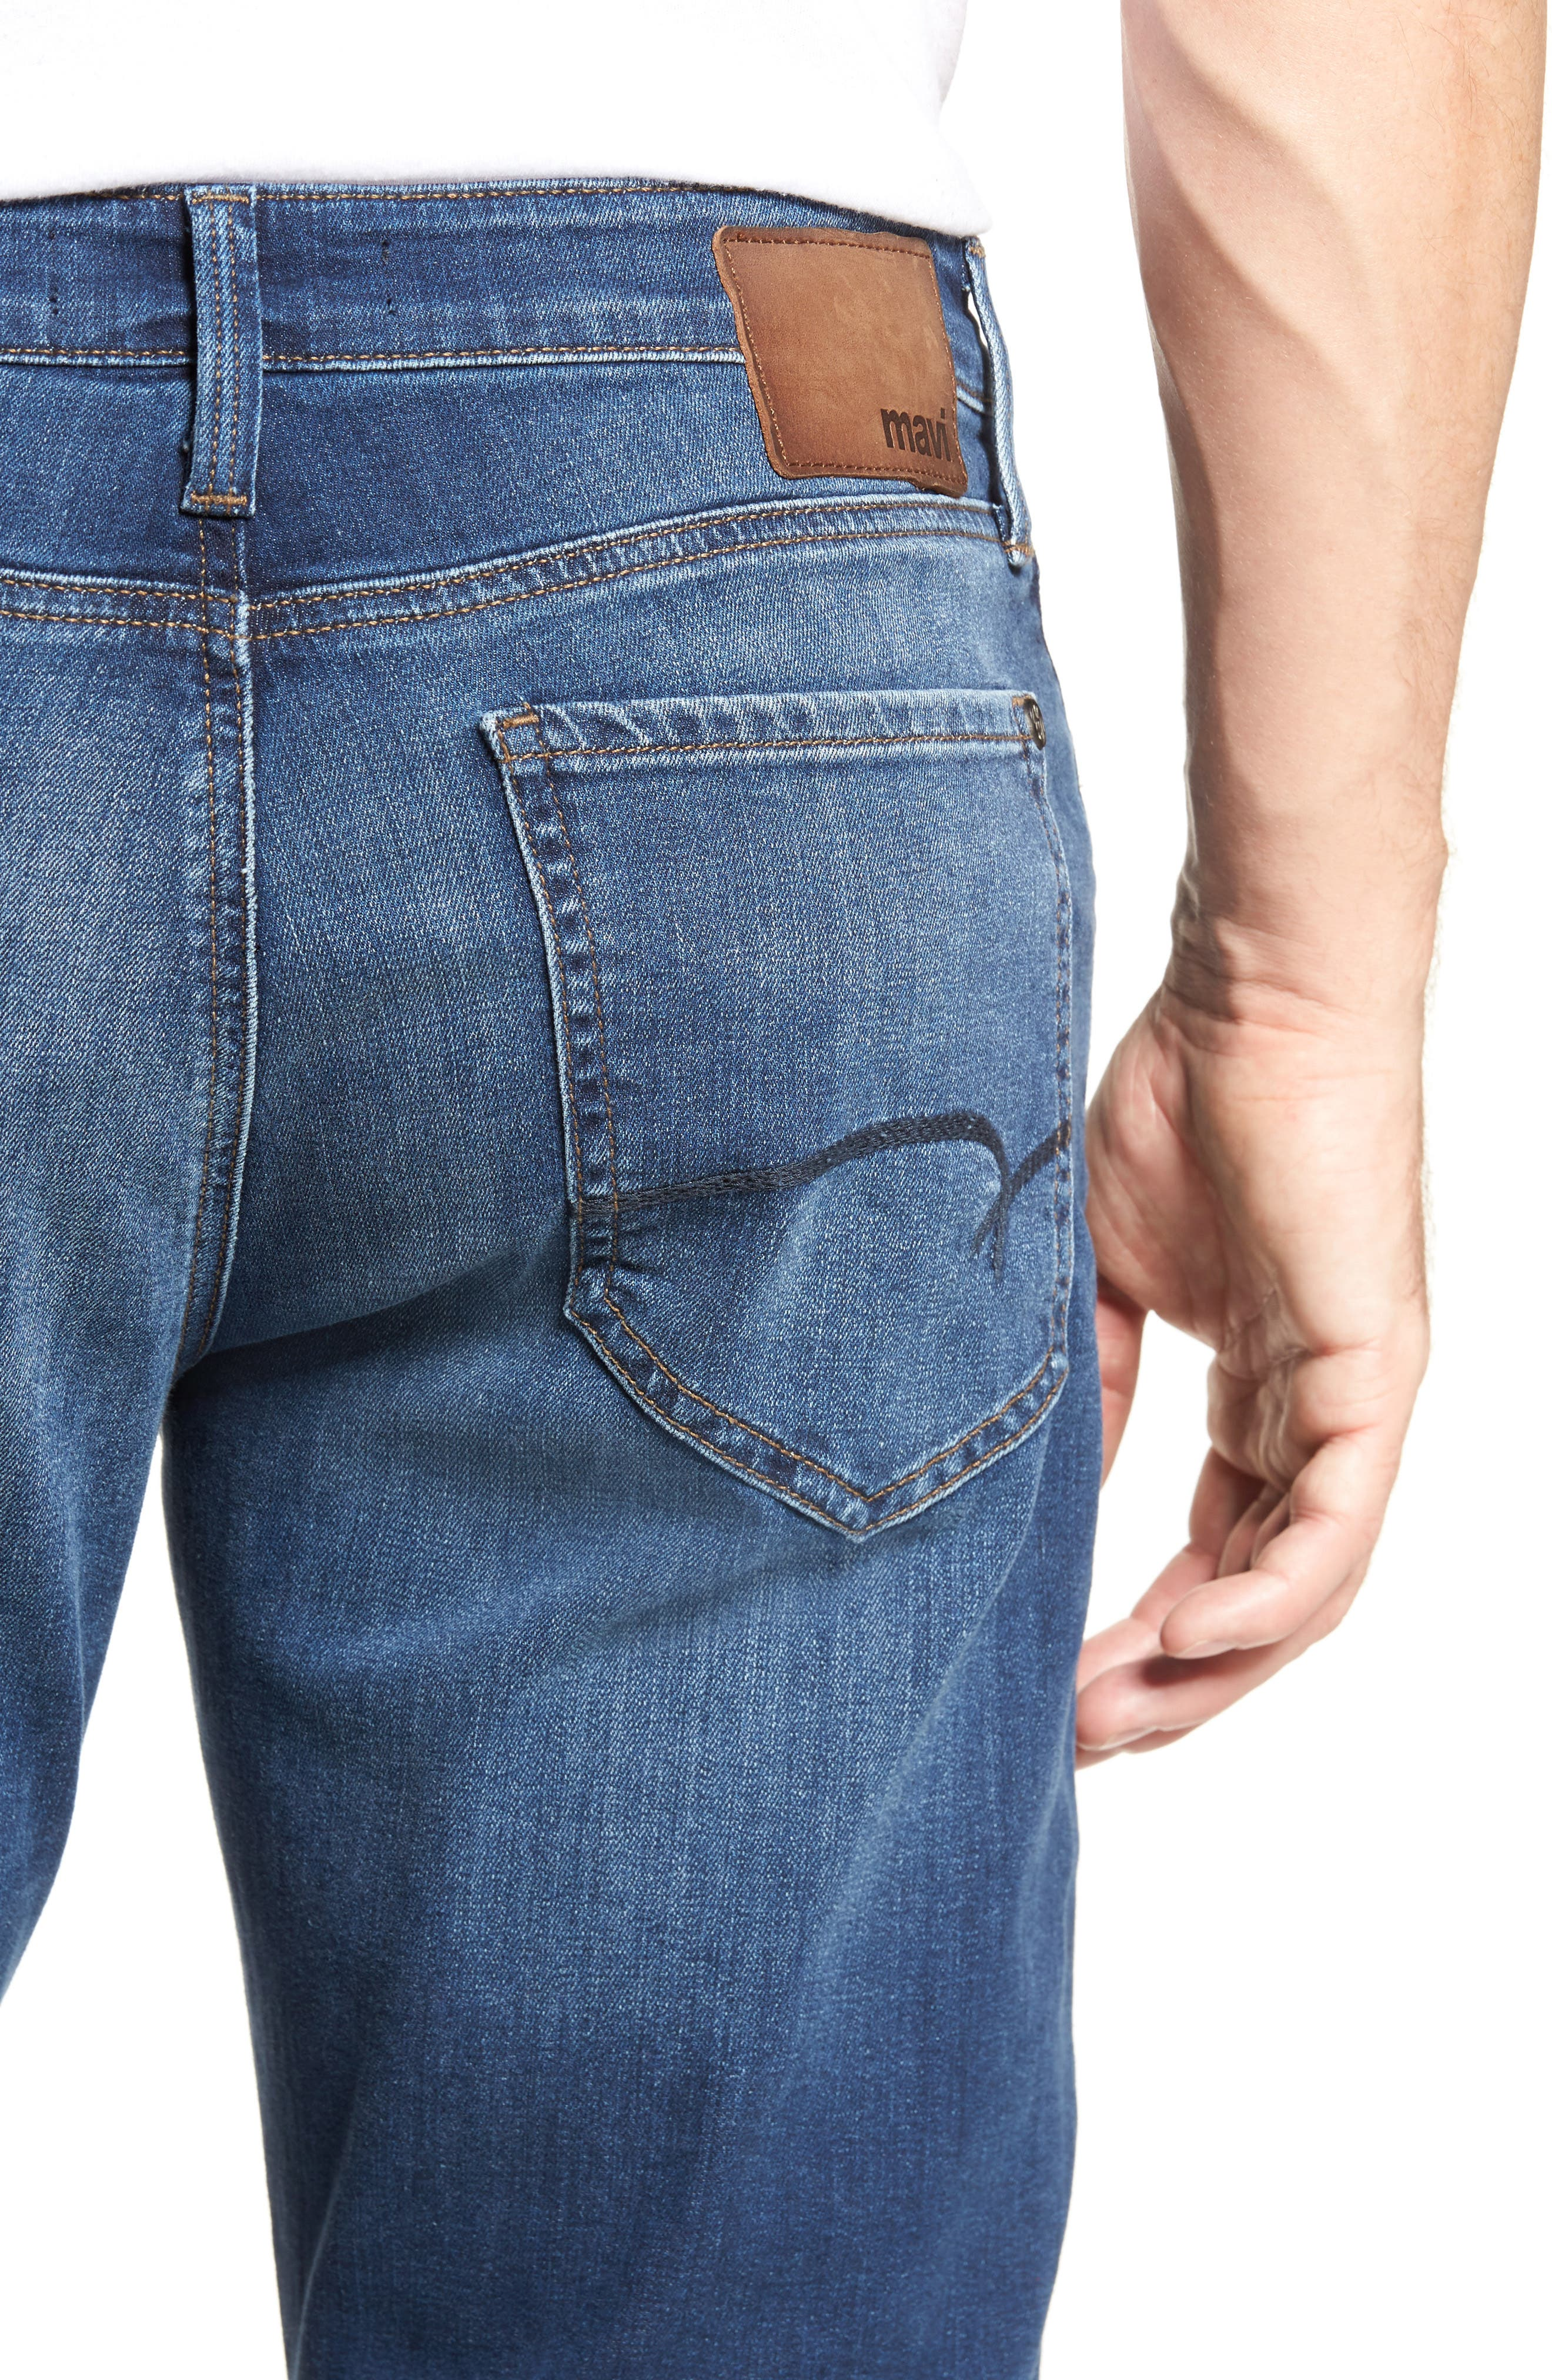 Myles Straight Fit Jeans,                             Alternate thumbnail 4, color,                             401